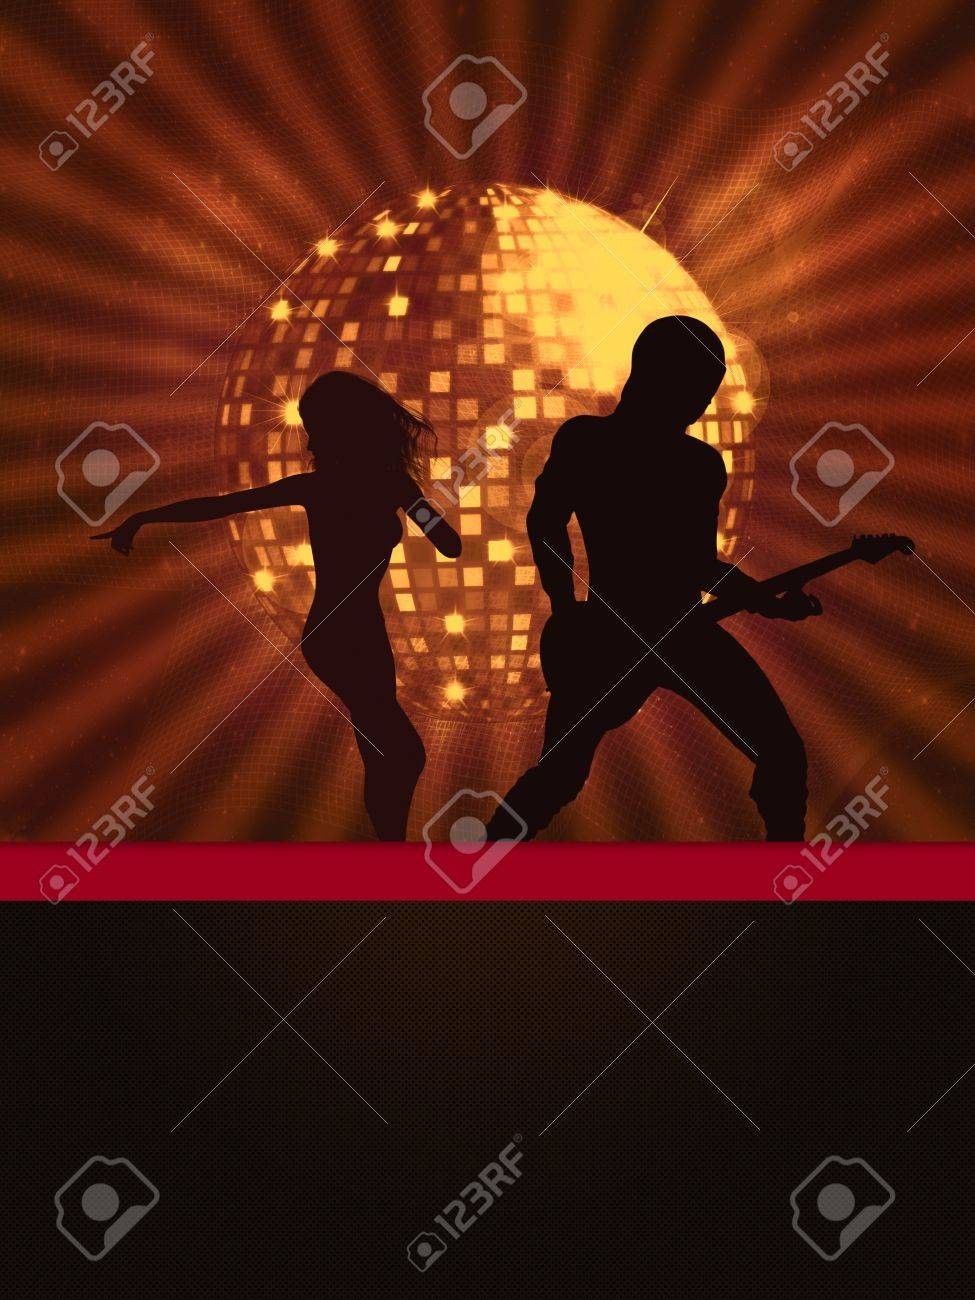 Illustration of party banner with disco ball and dancing people. Stock Photo - 15281929